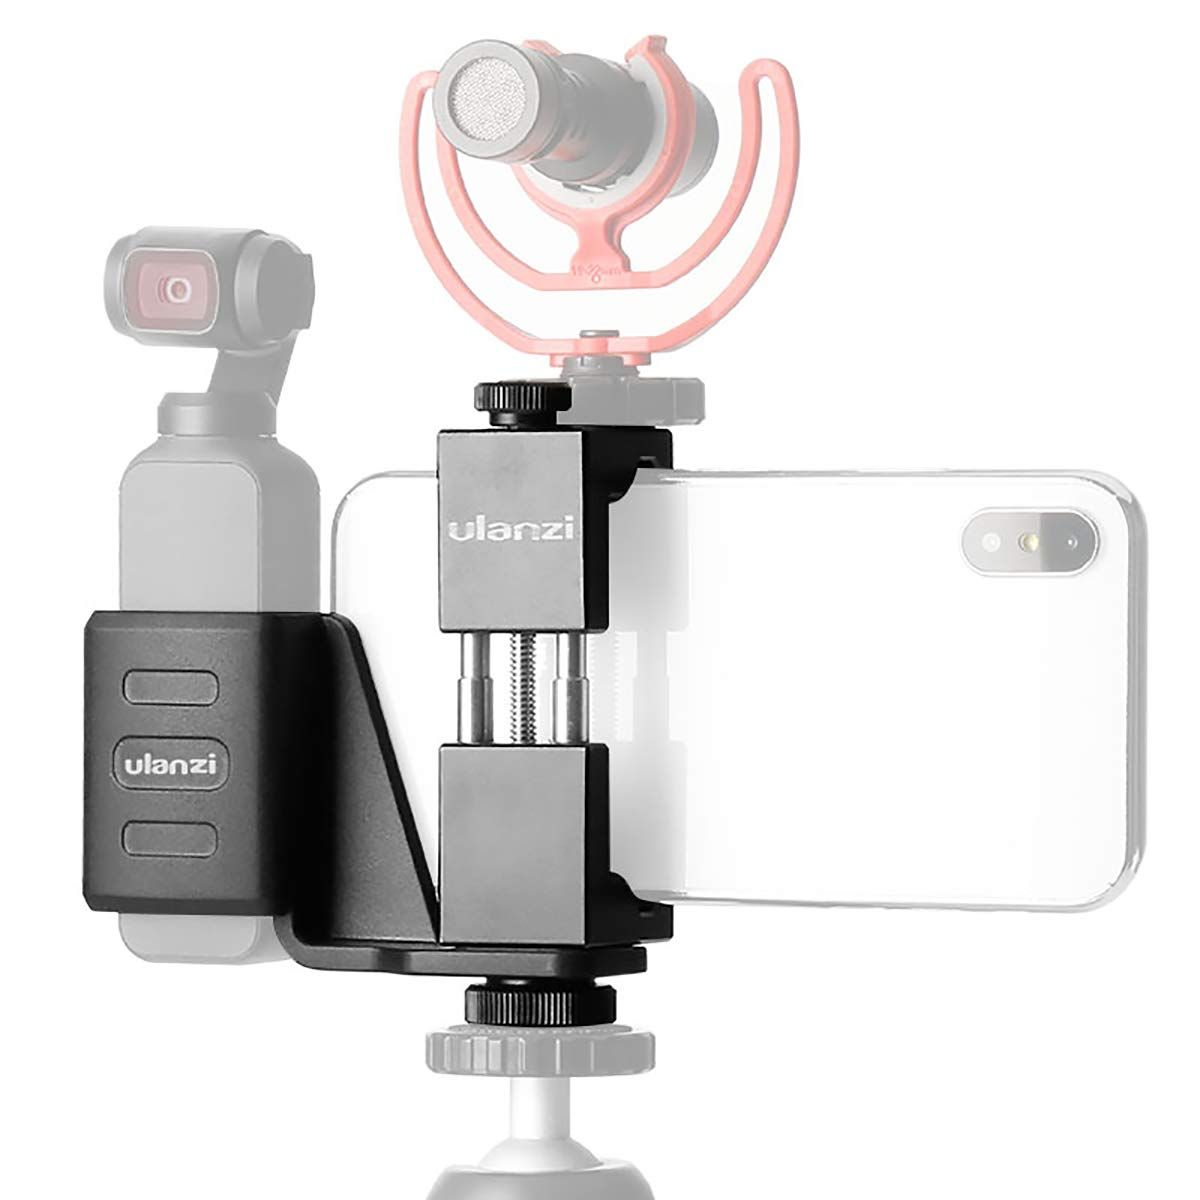 Ulanzi DJI Osmo Pocket holder